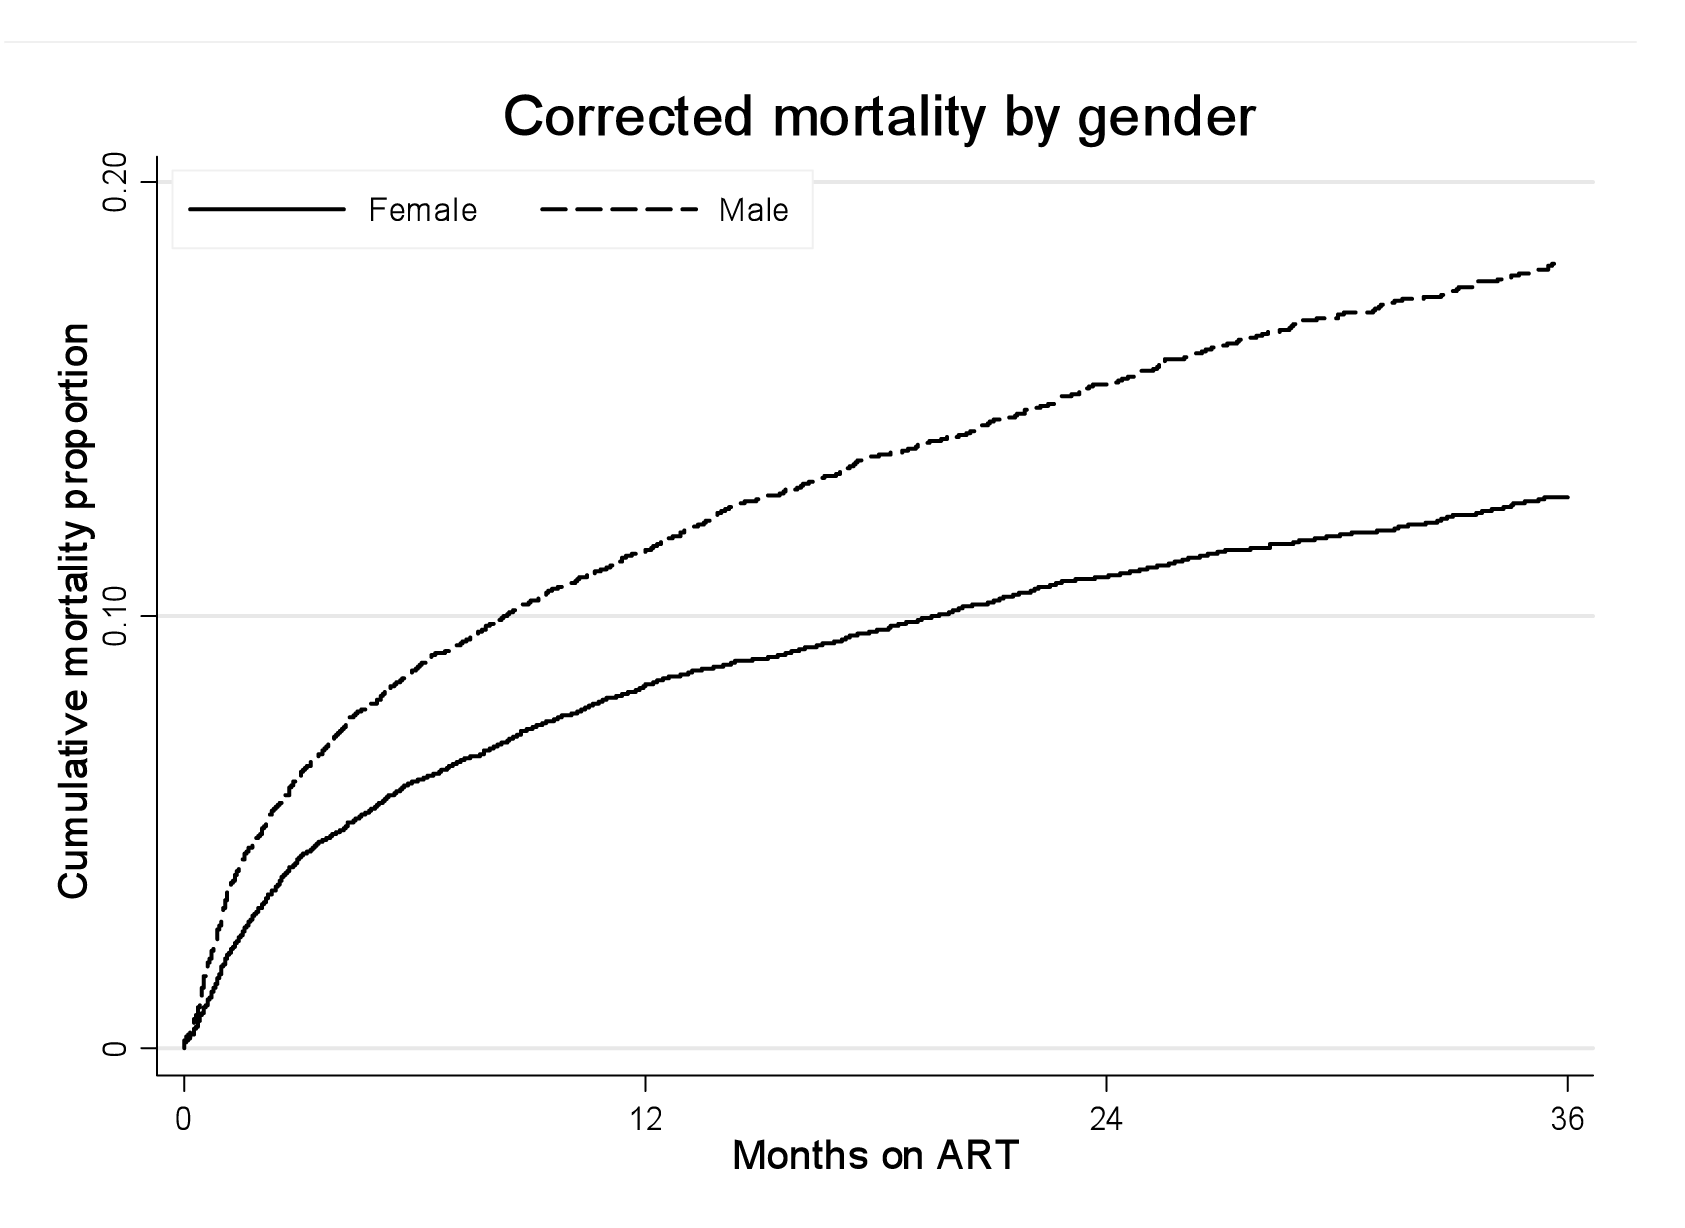 Mortality by gender and ART duration.